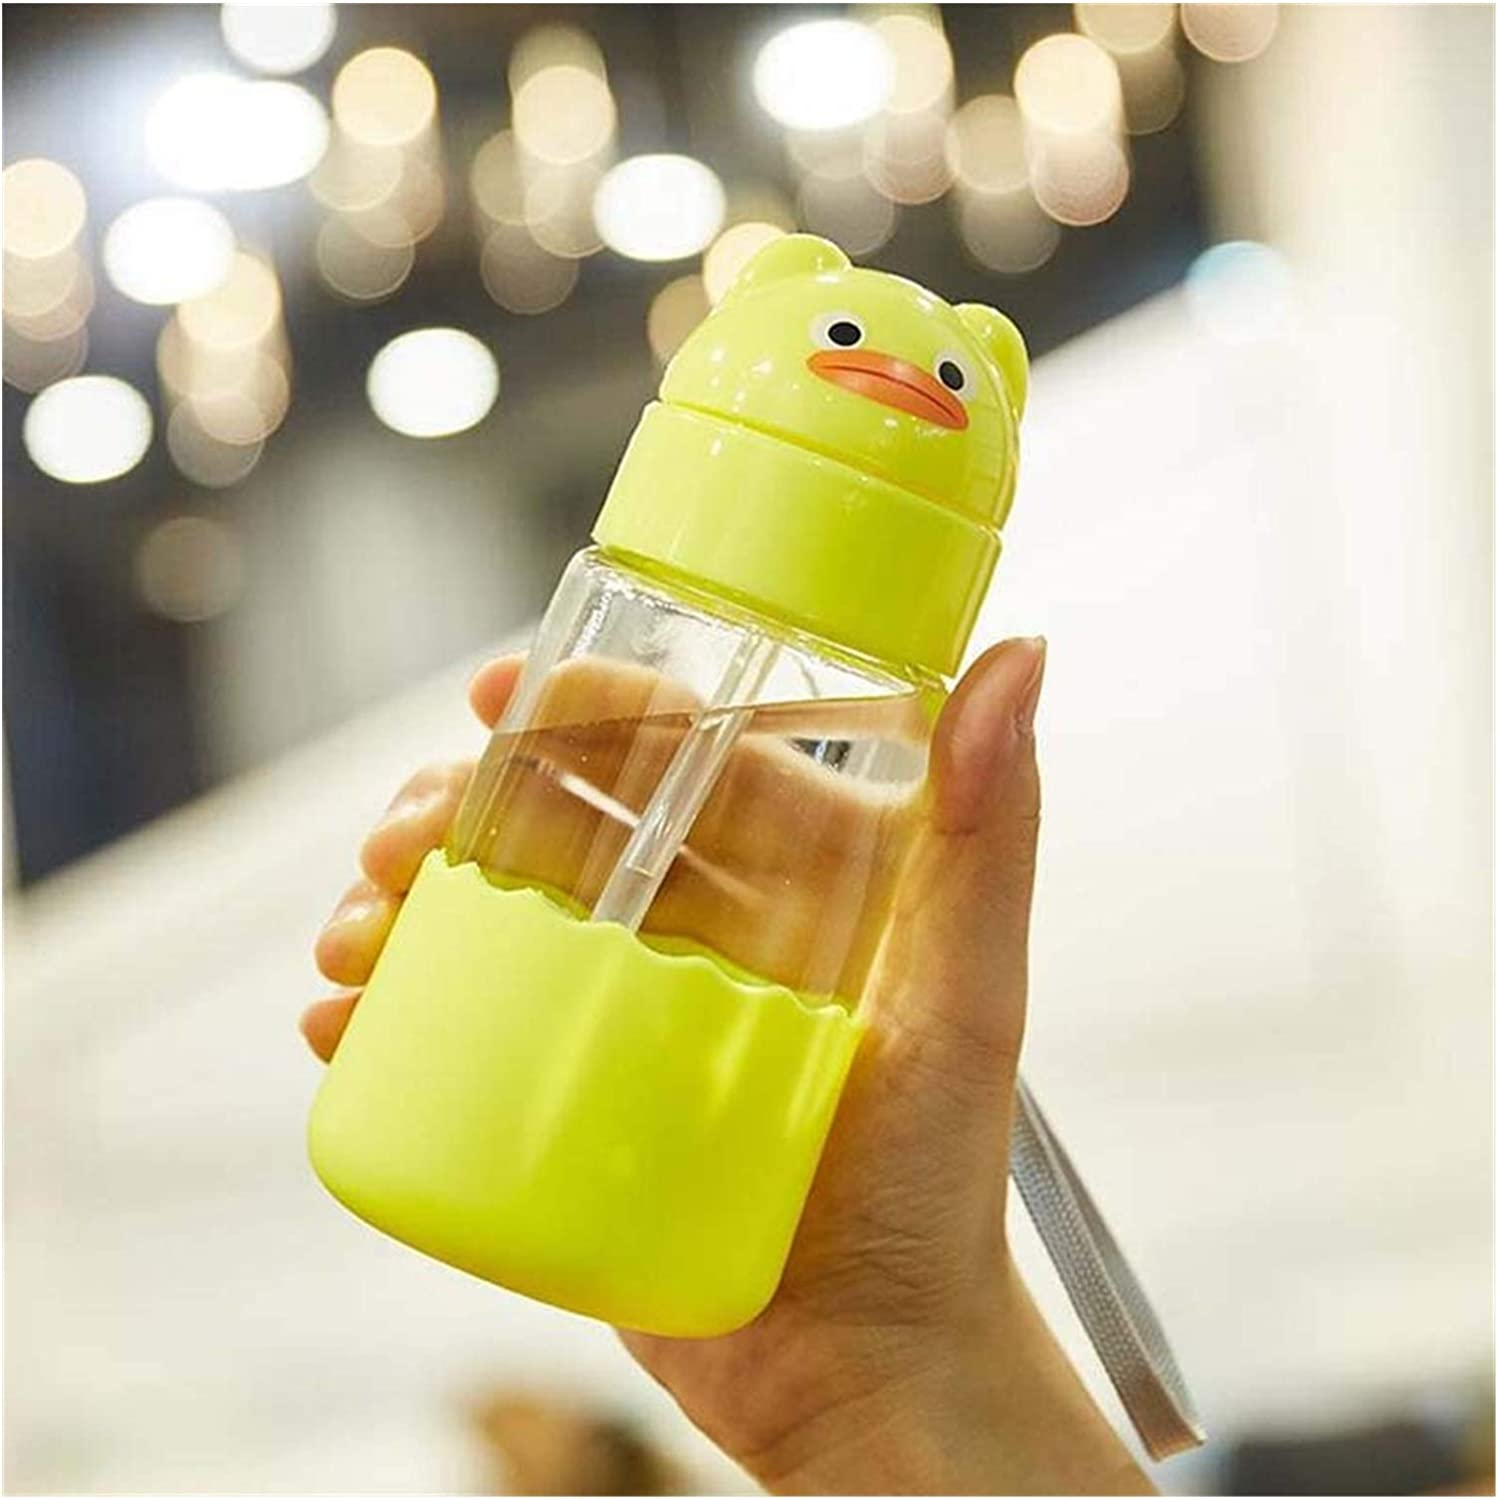 Straw cup Free Shipping Cheap Today's only Bargain Gift Kids Glass Cup Water Bottle Drink Strap with